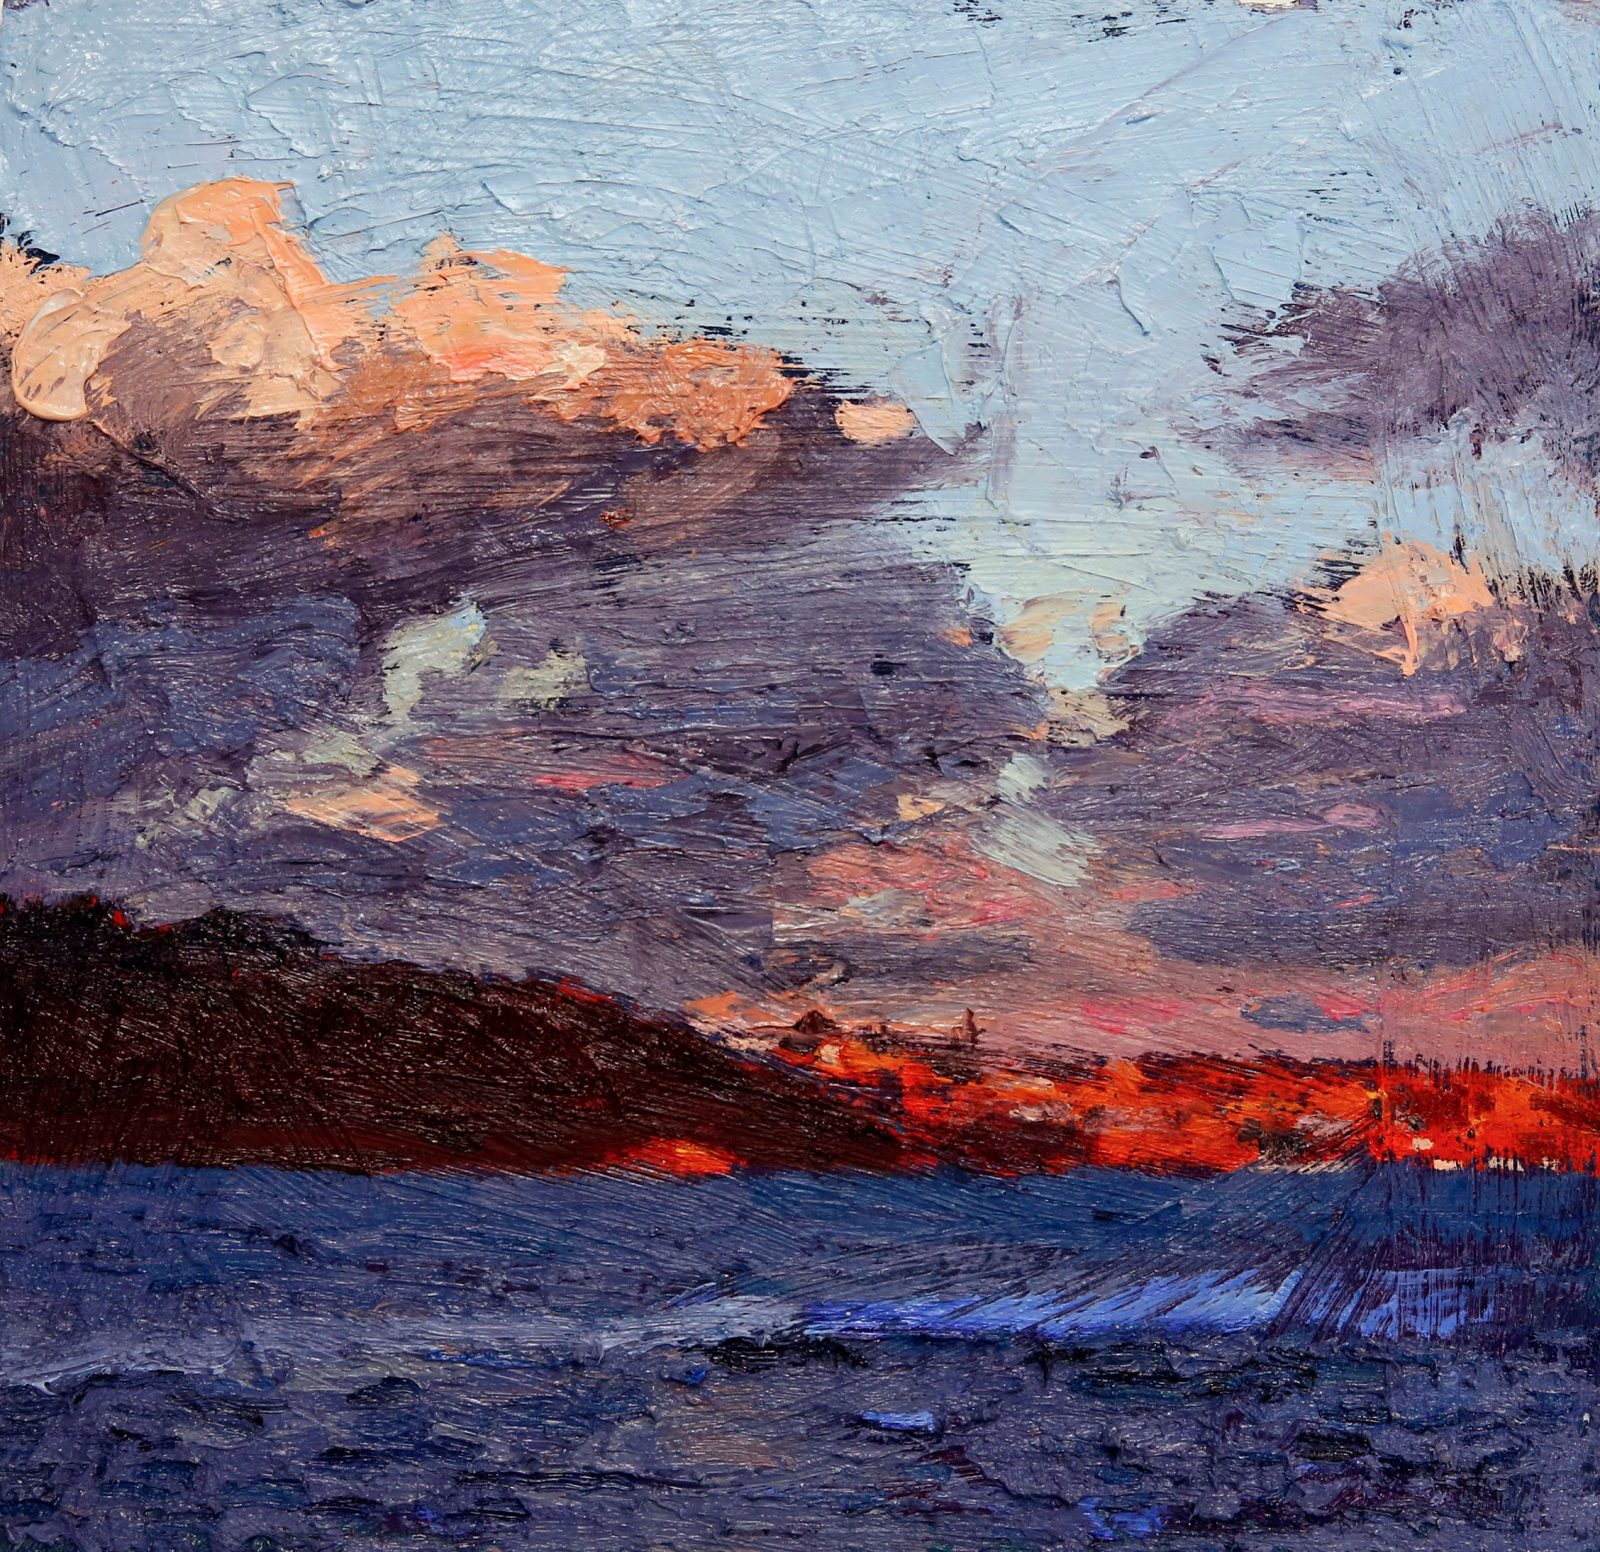 Ashley Frost, Middle Head study, oil on board, 33 x 32 cm